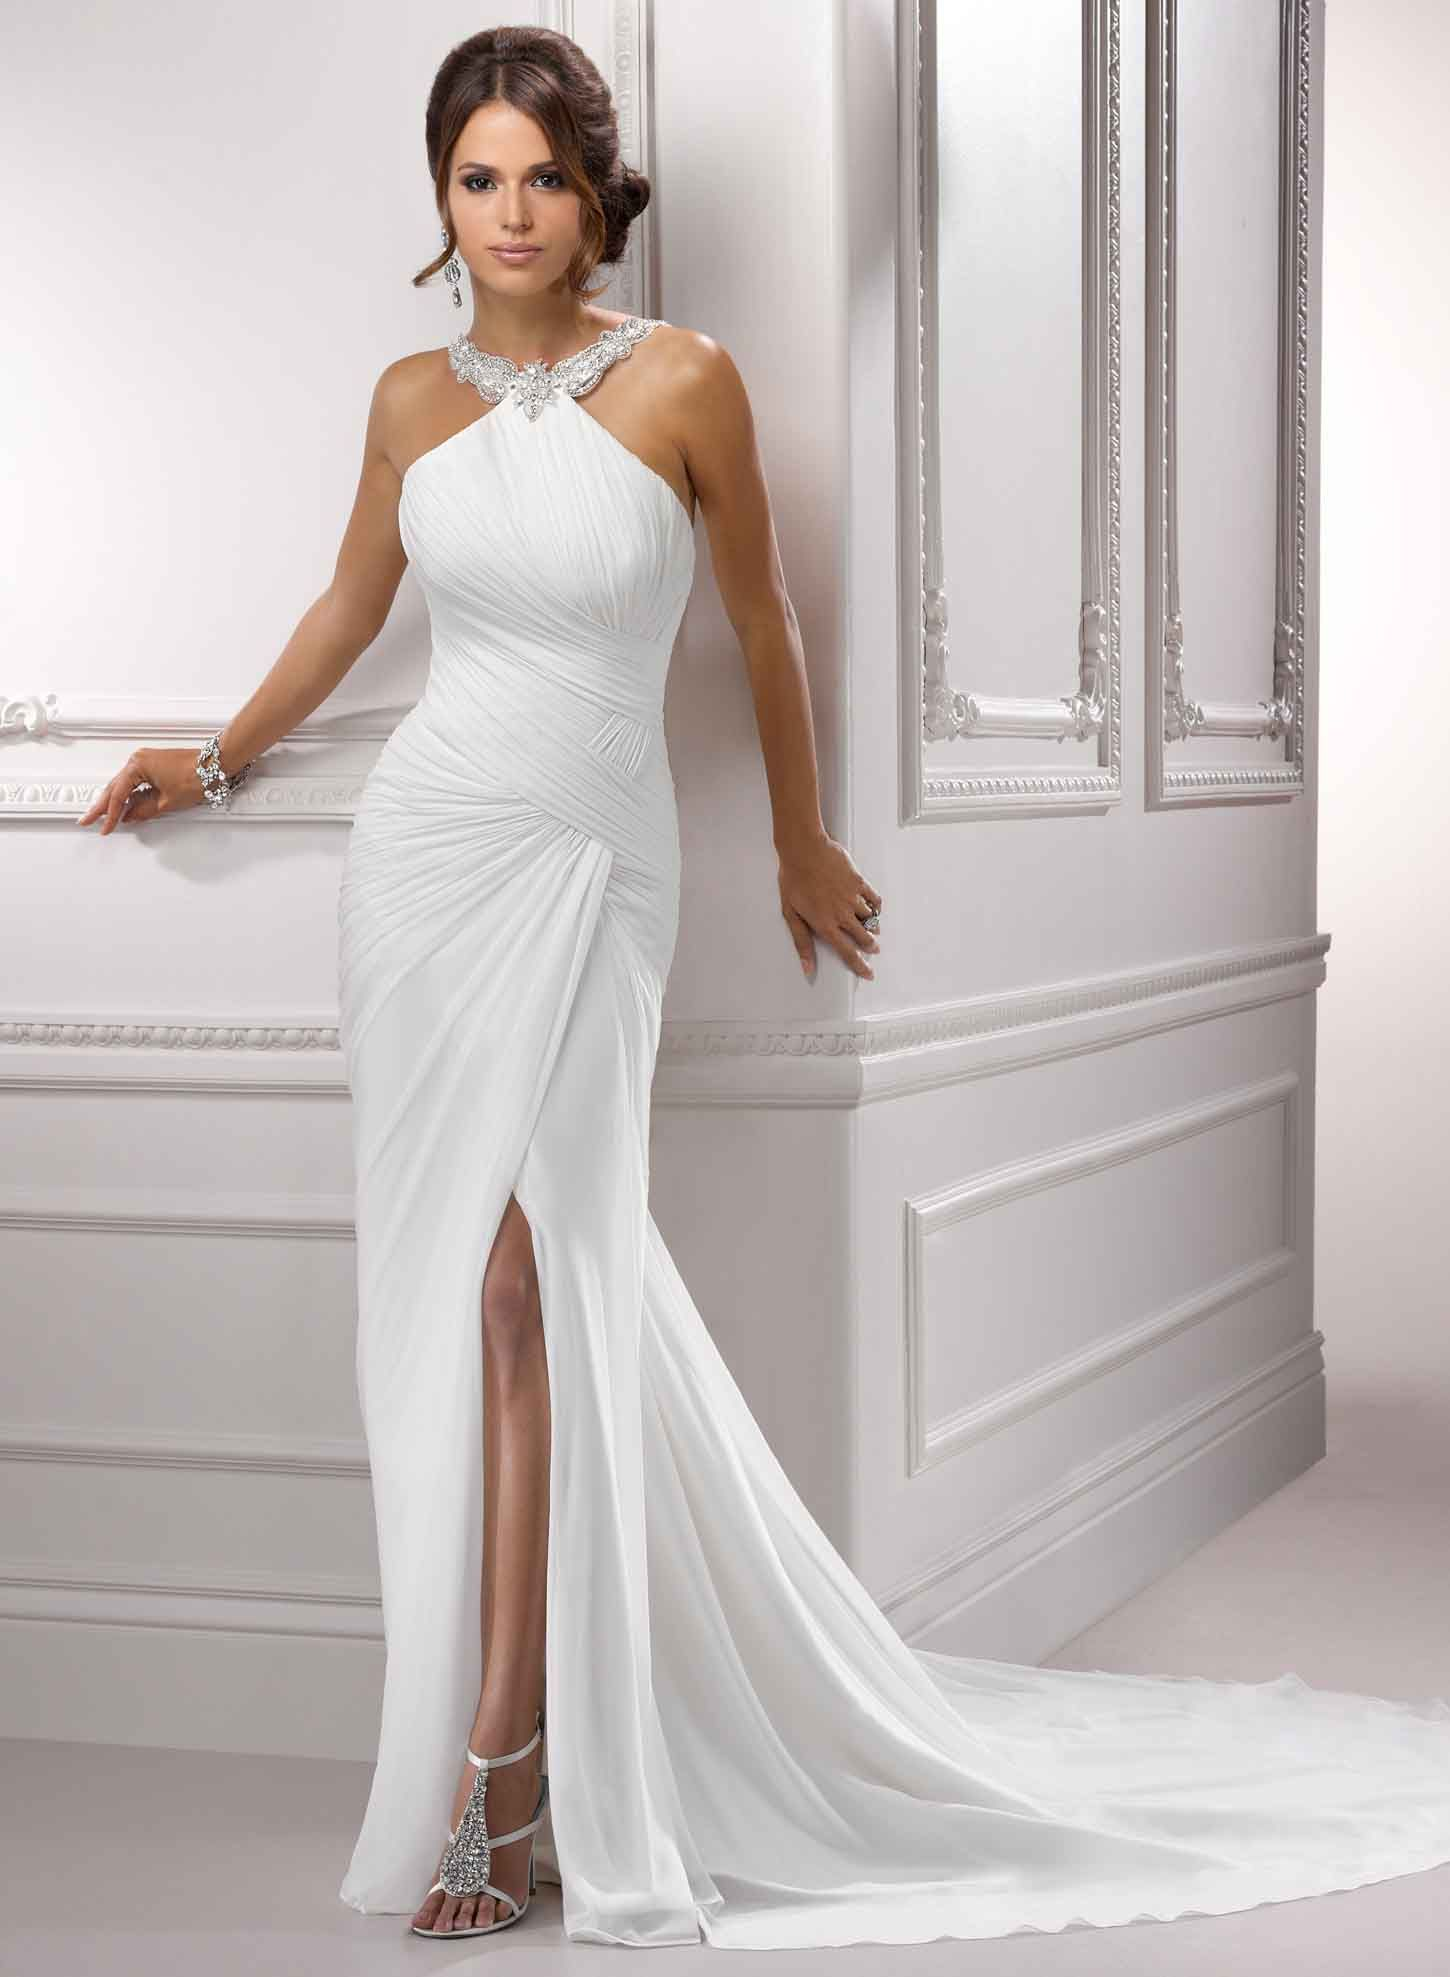 Simple Elegant Wedding Dresses With Strap kinda the look I would go ...